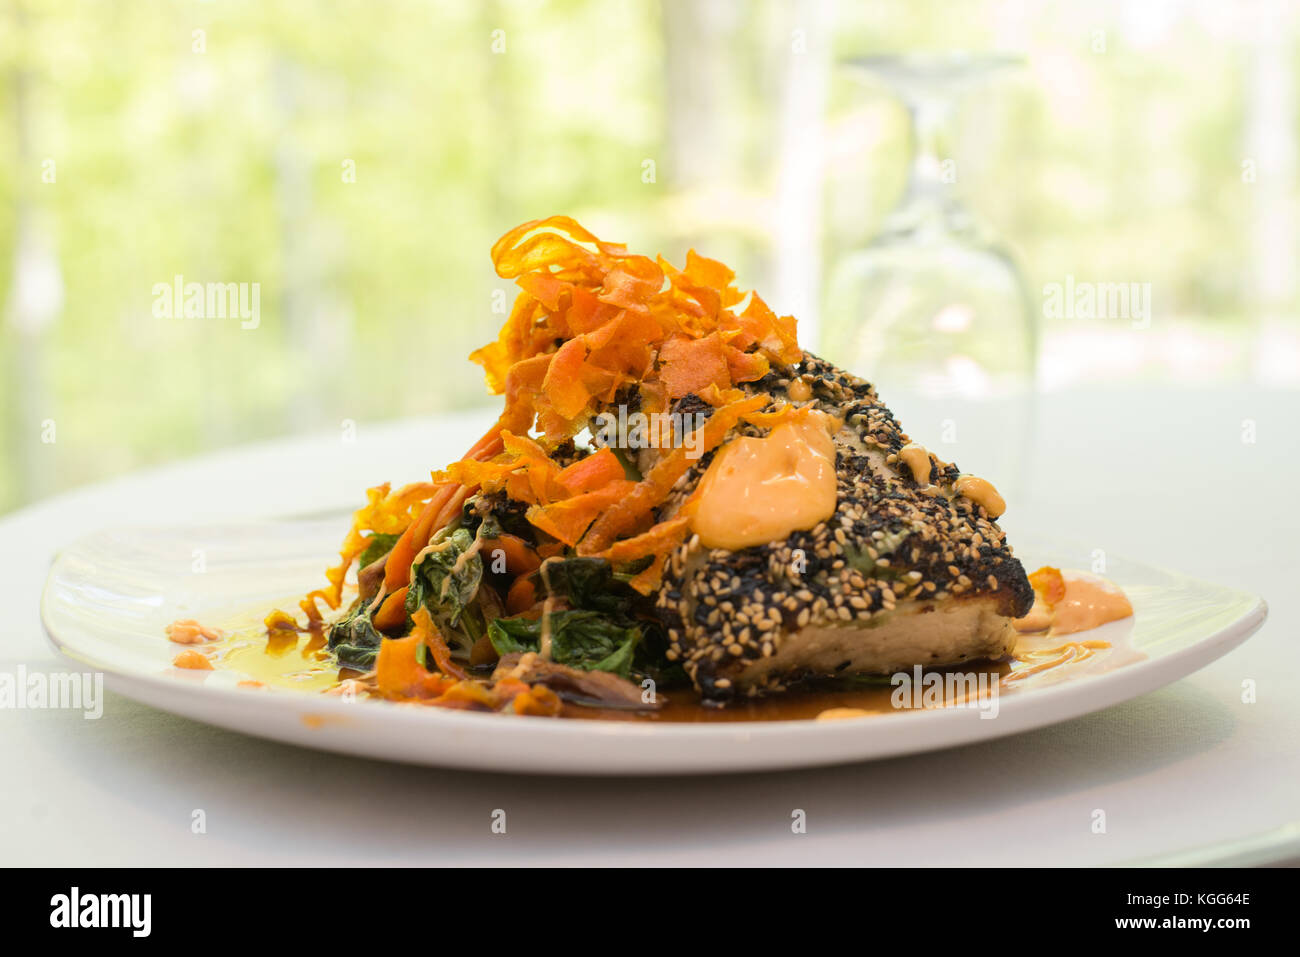 Encrusted fish presented on a plate for a restaurant. - Stock Image